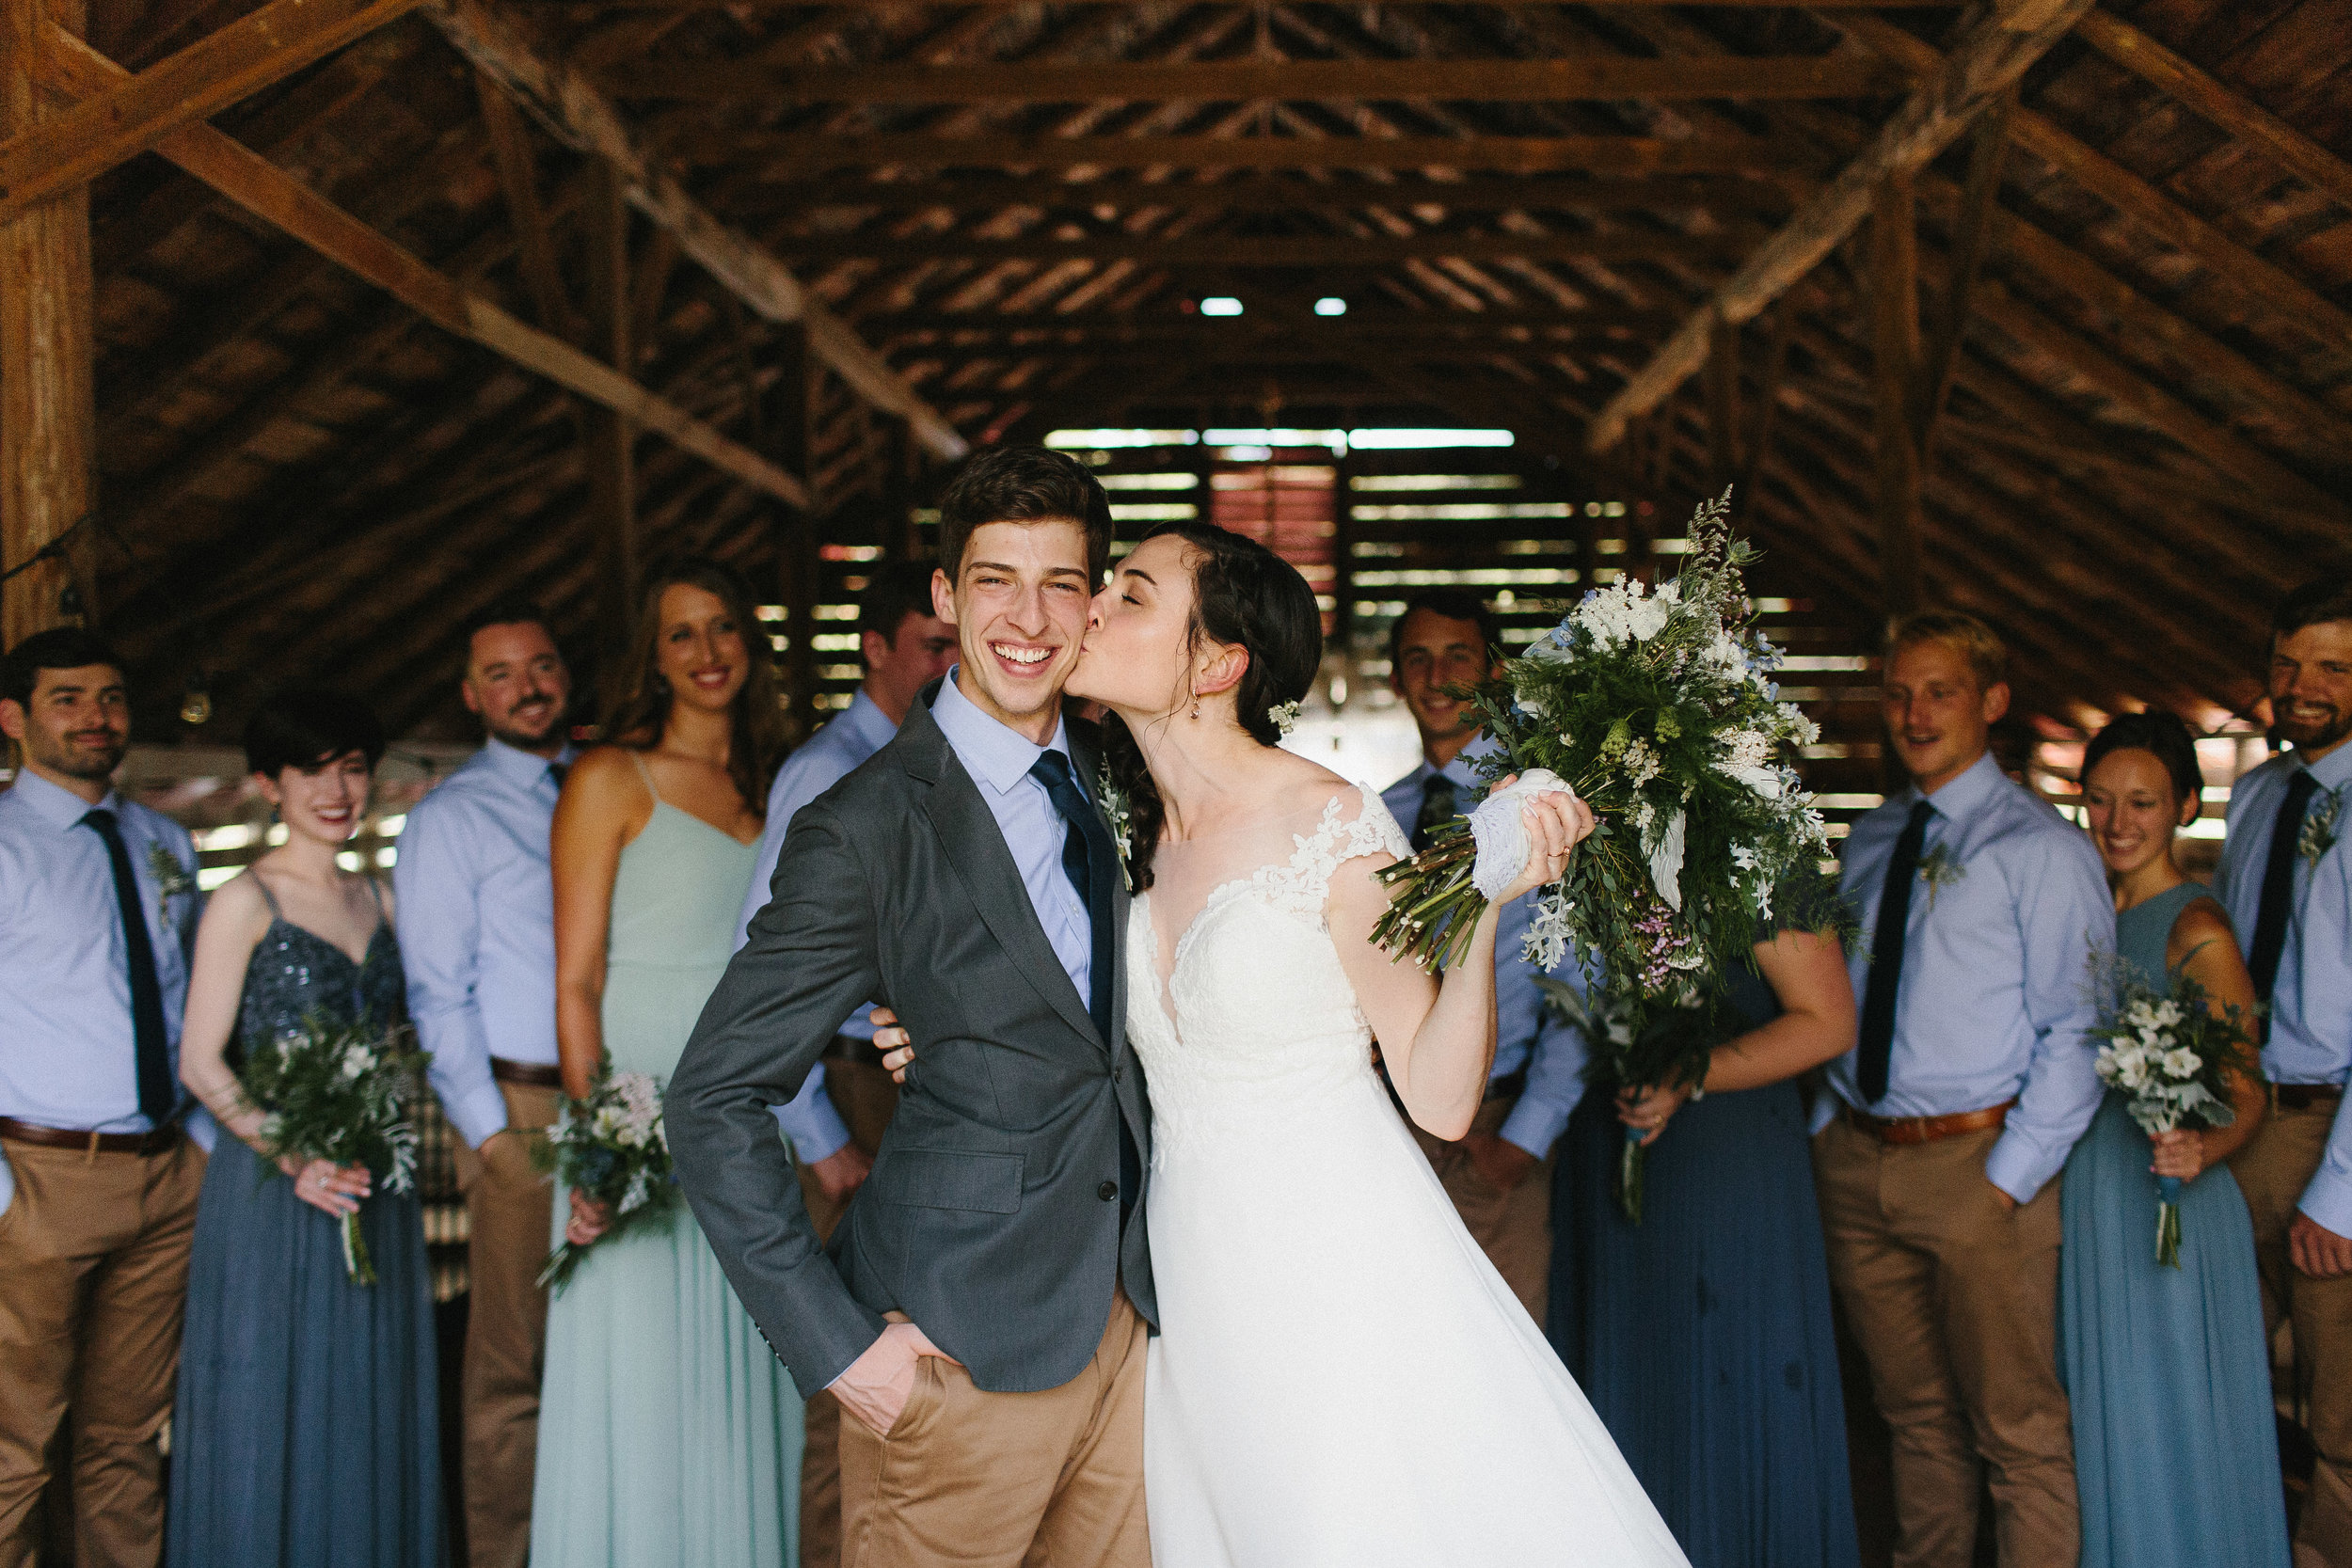 cleveland_georgia_mountain_laurel_farm_natural_classic_timeless_documentary_candid_wedding_emotional_photojournalism_river_west_1425.jpg